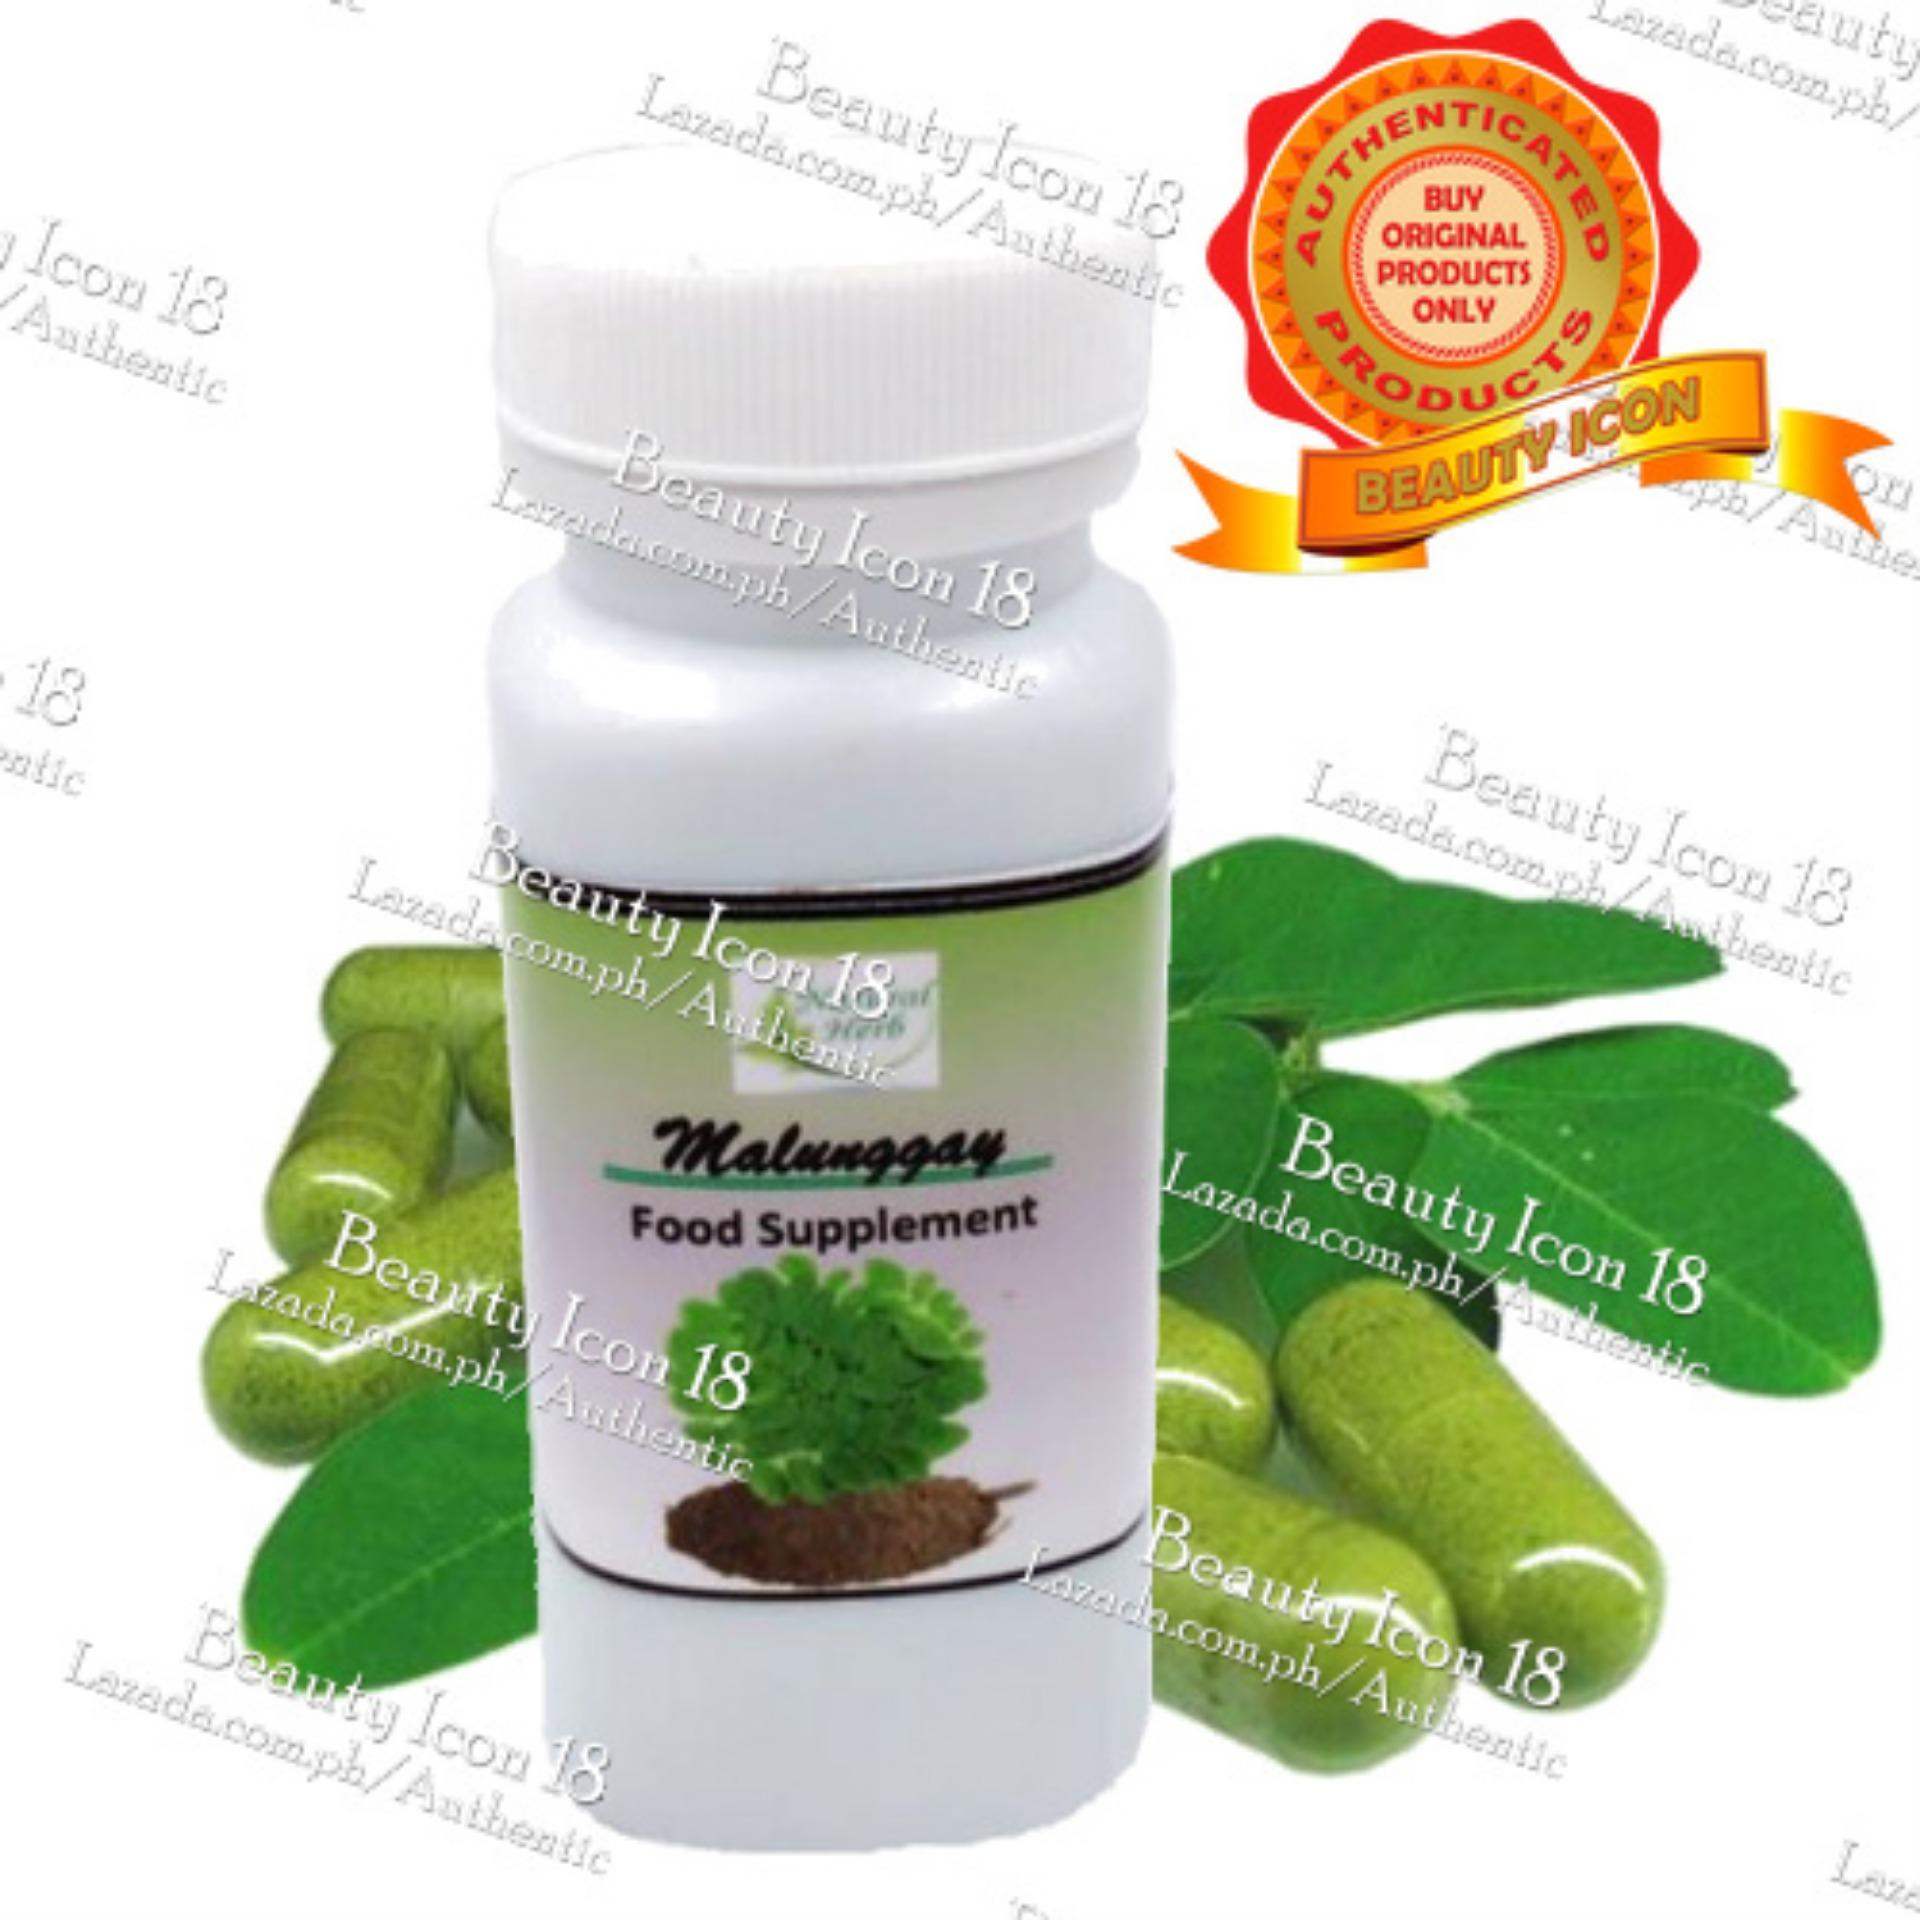 Cheap herbal supplement - Malunggay Capsule Natural Herb Food Supplement Bottle Of 100pcs Lazada Ph